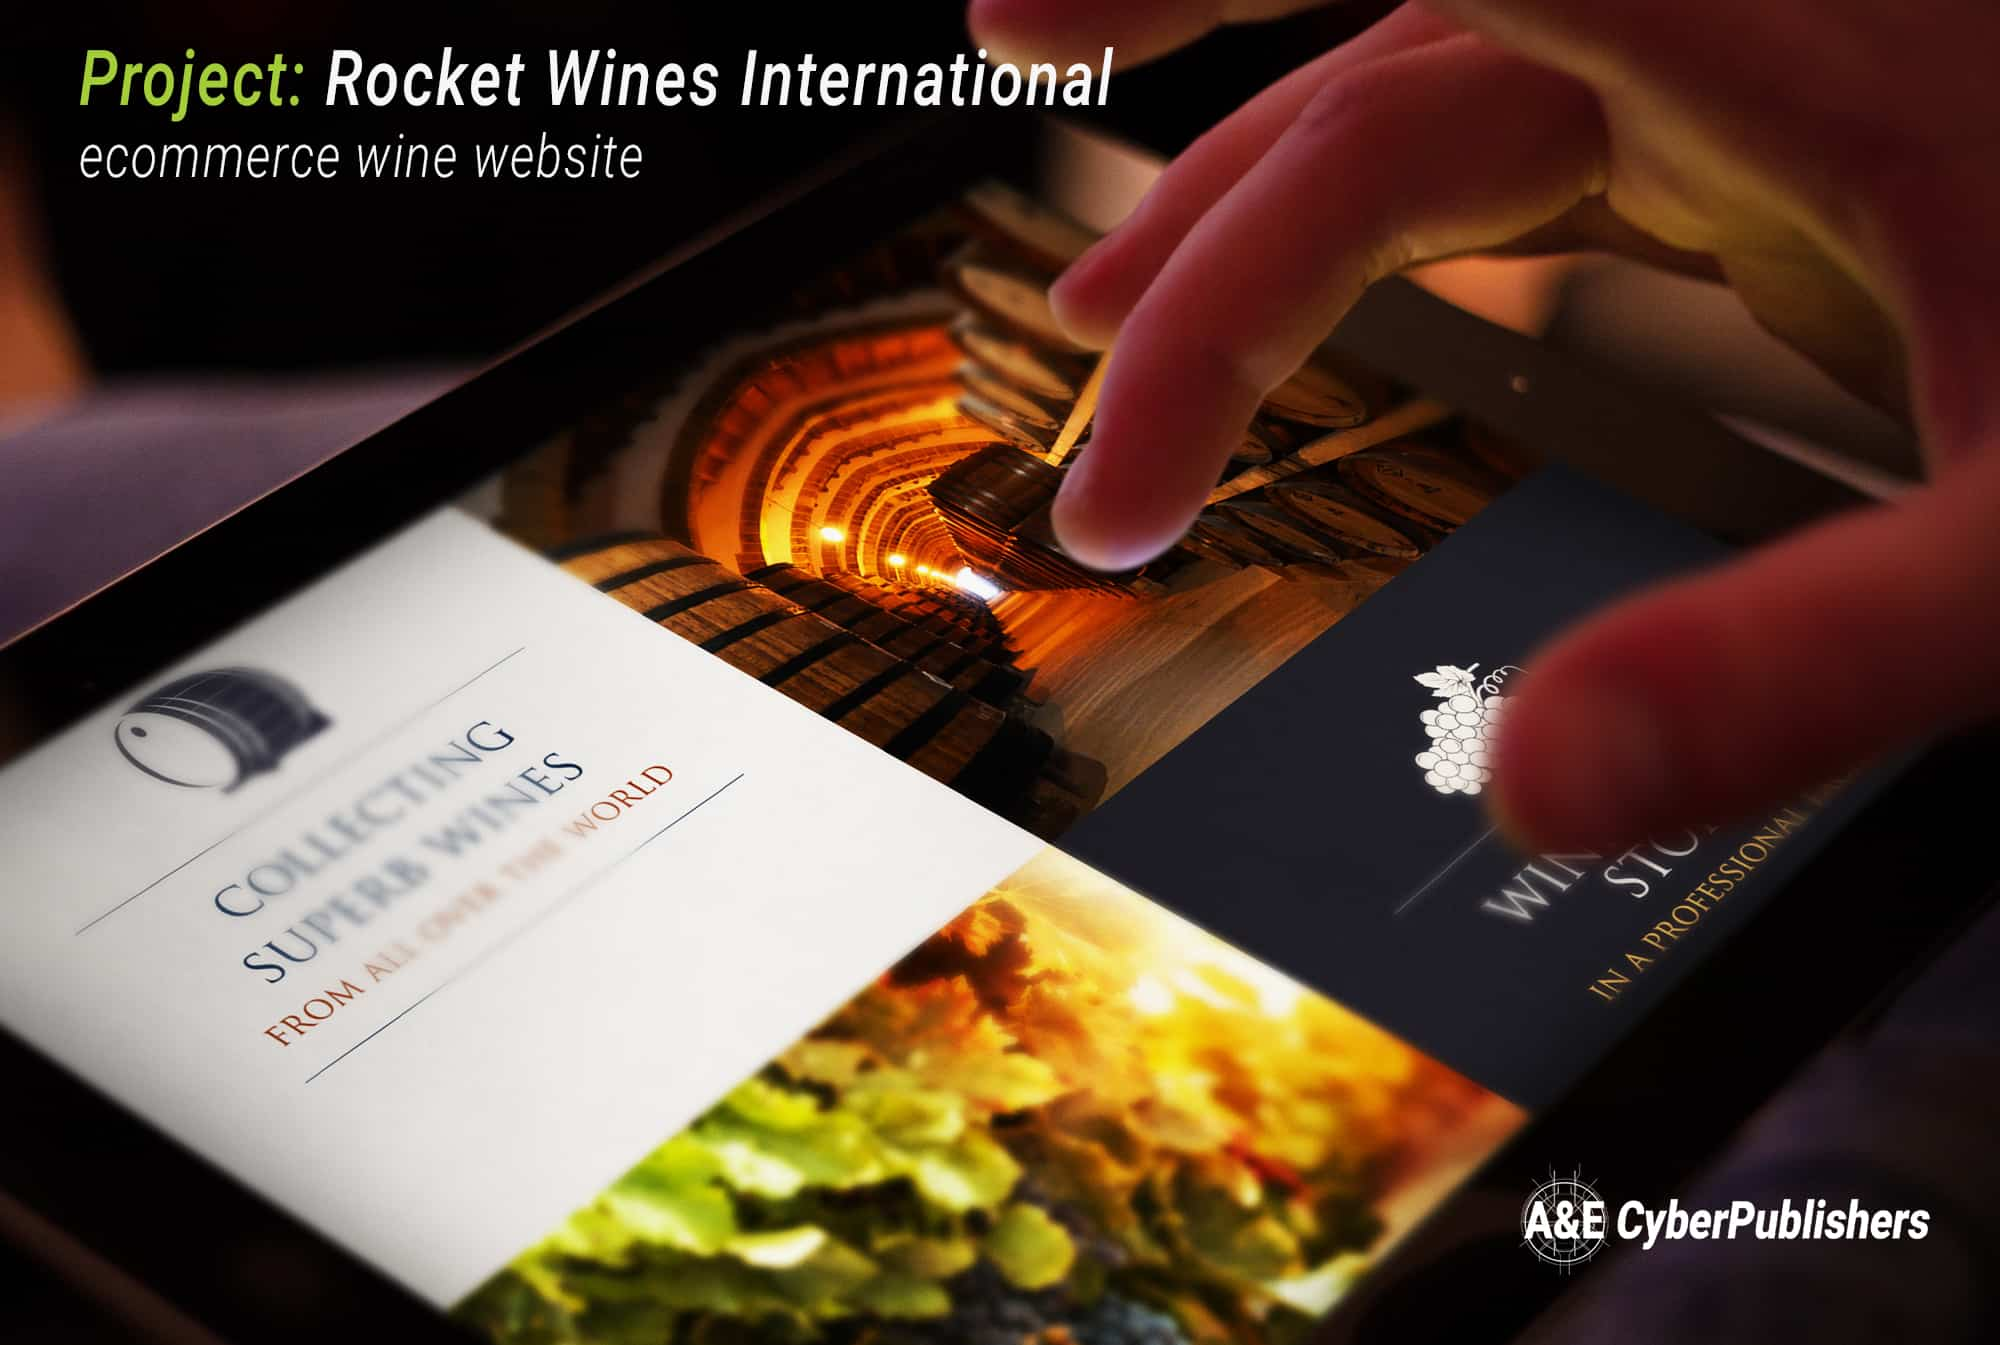 Rocket Wines International